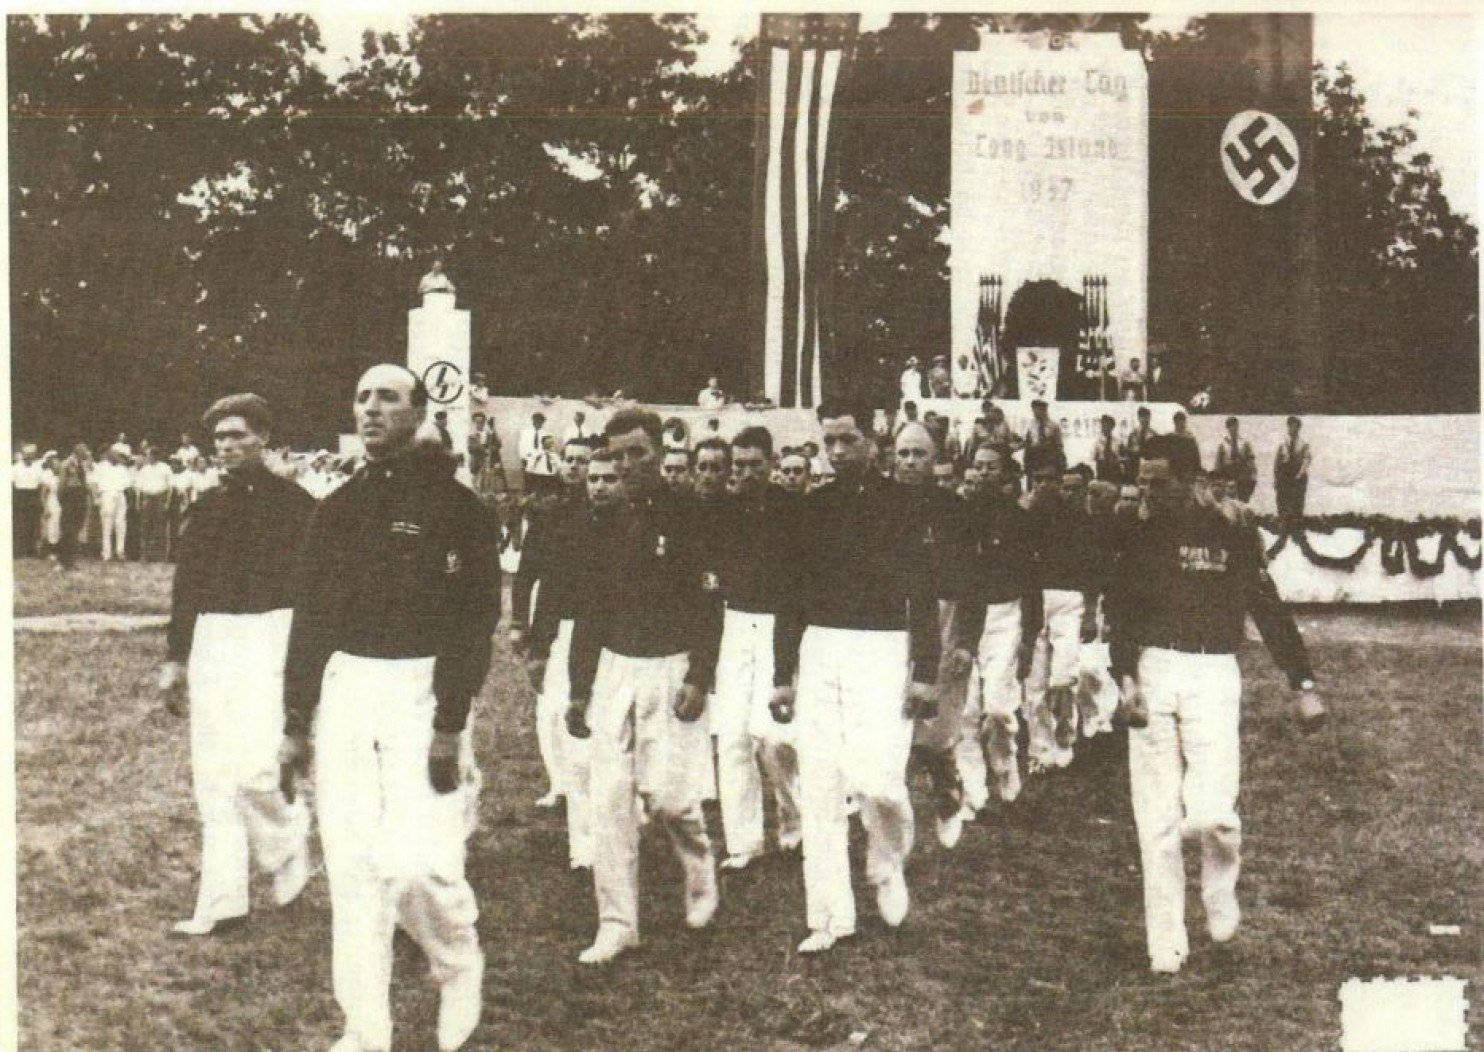 Included in a lawsuit against the German-American Settlement League, this archival photo shows men in Italian Blackshirts uniforms marching under a Nazi flag in Long Island. (Court filing/U.S. District Court, Eastern District of New York)